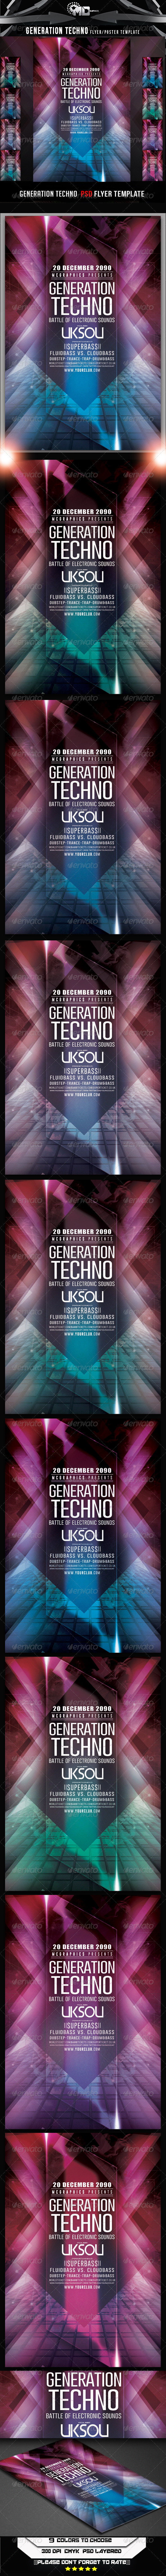 GraphicRiver Generation Techno Flyer Template 8231440